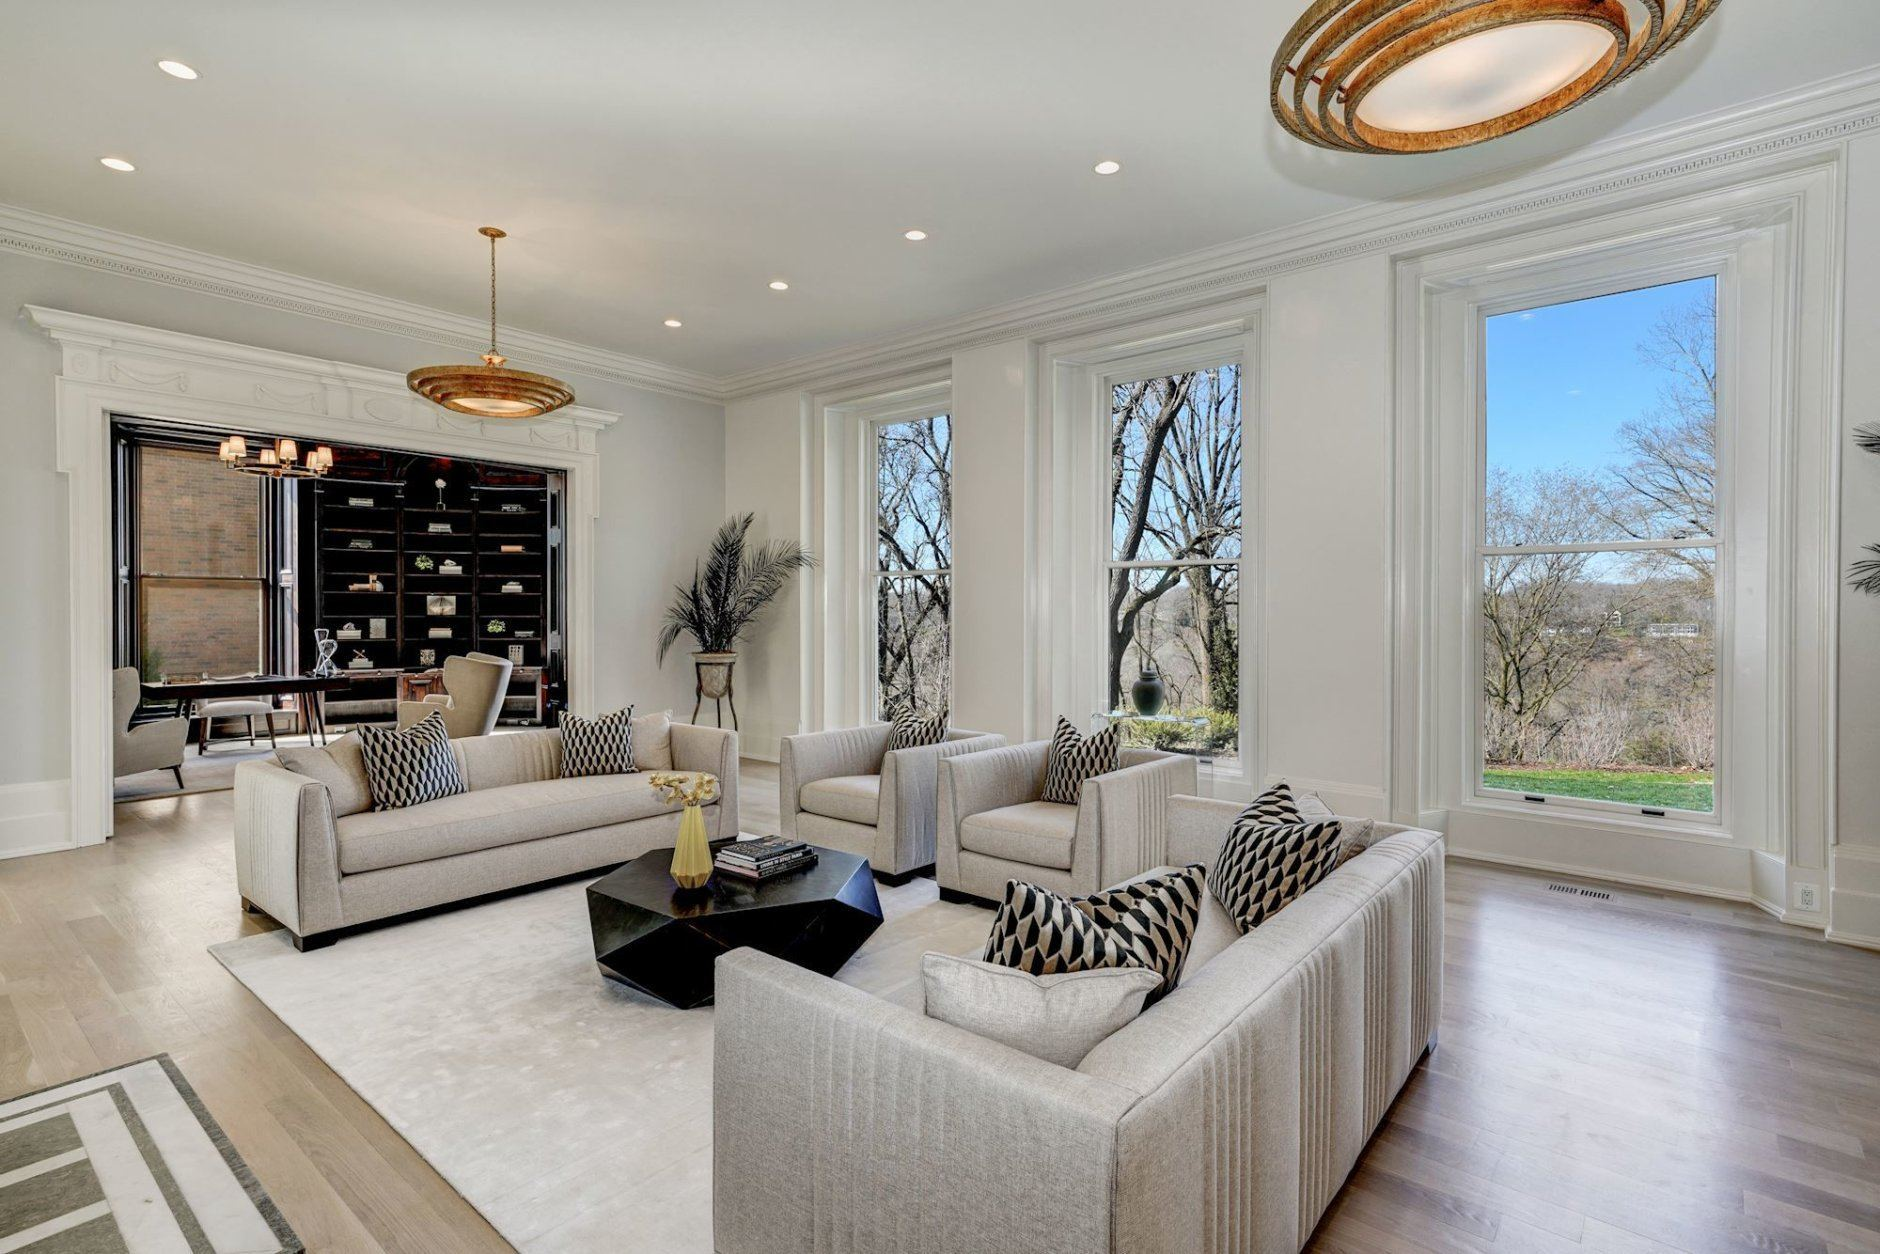 The living room. (Courtesy Cesar A Olivares for Wydler Brothers)